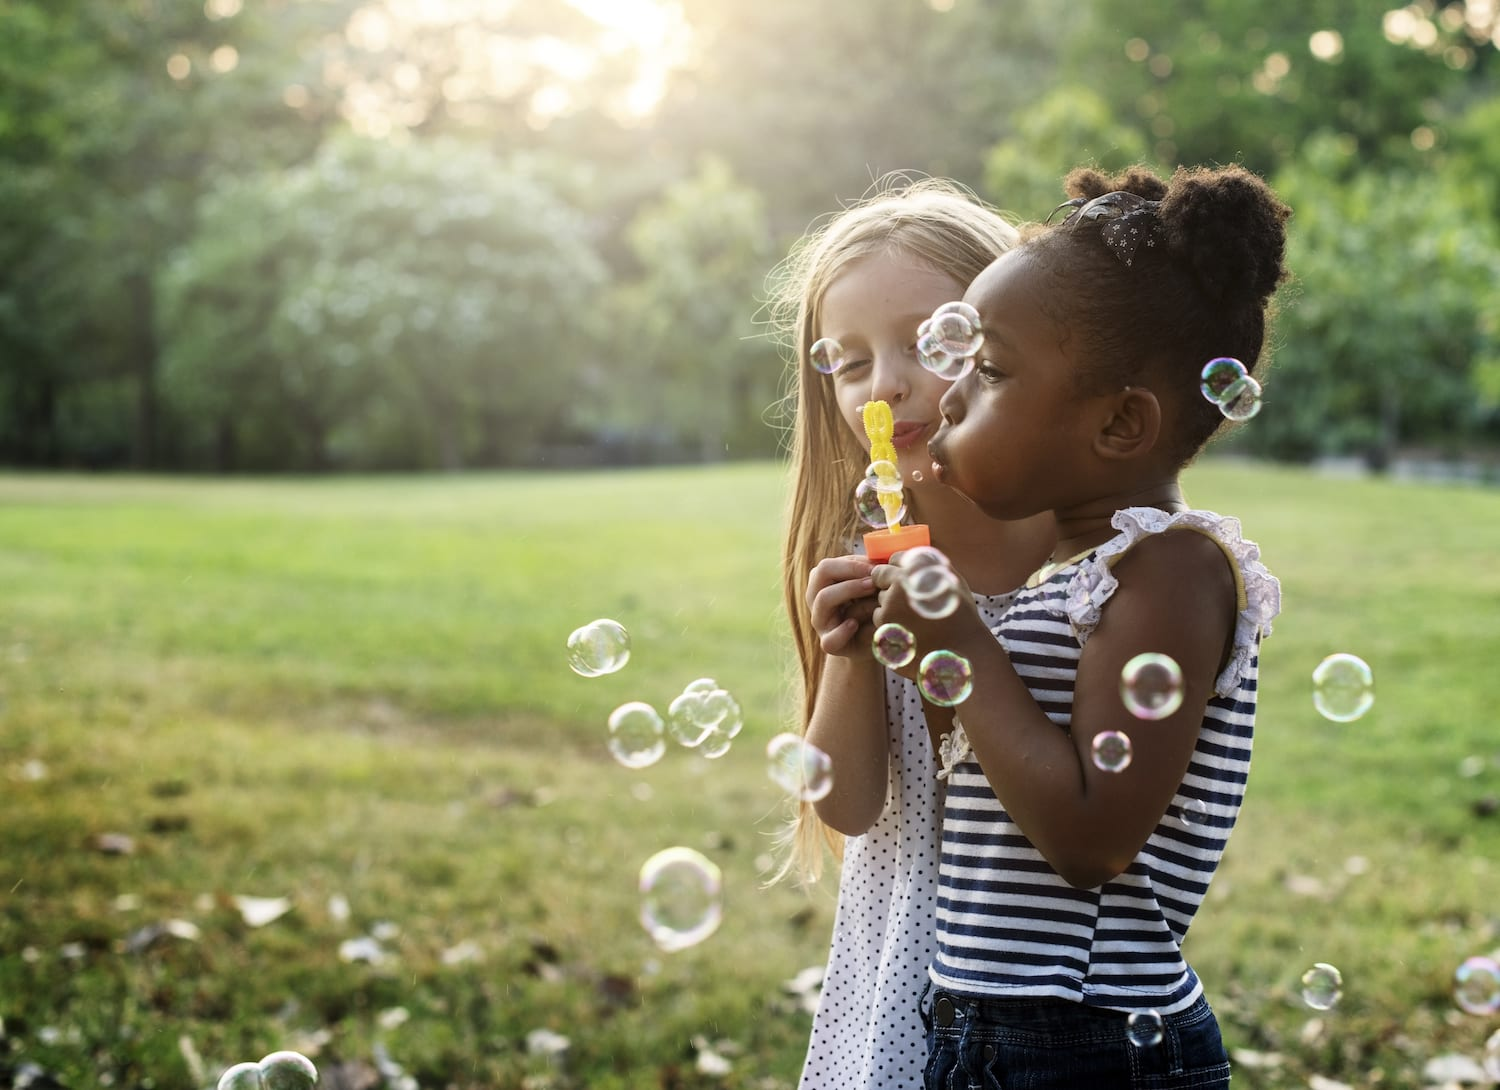 Children playing outside with bubbles